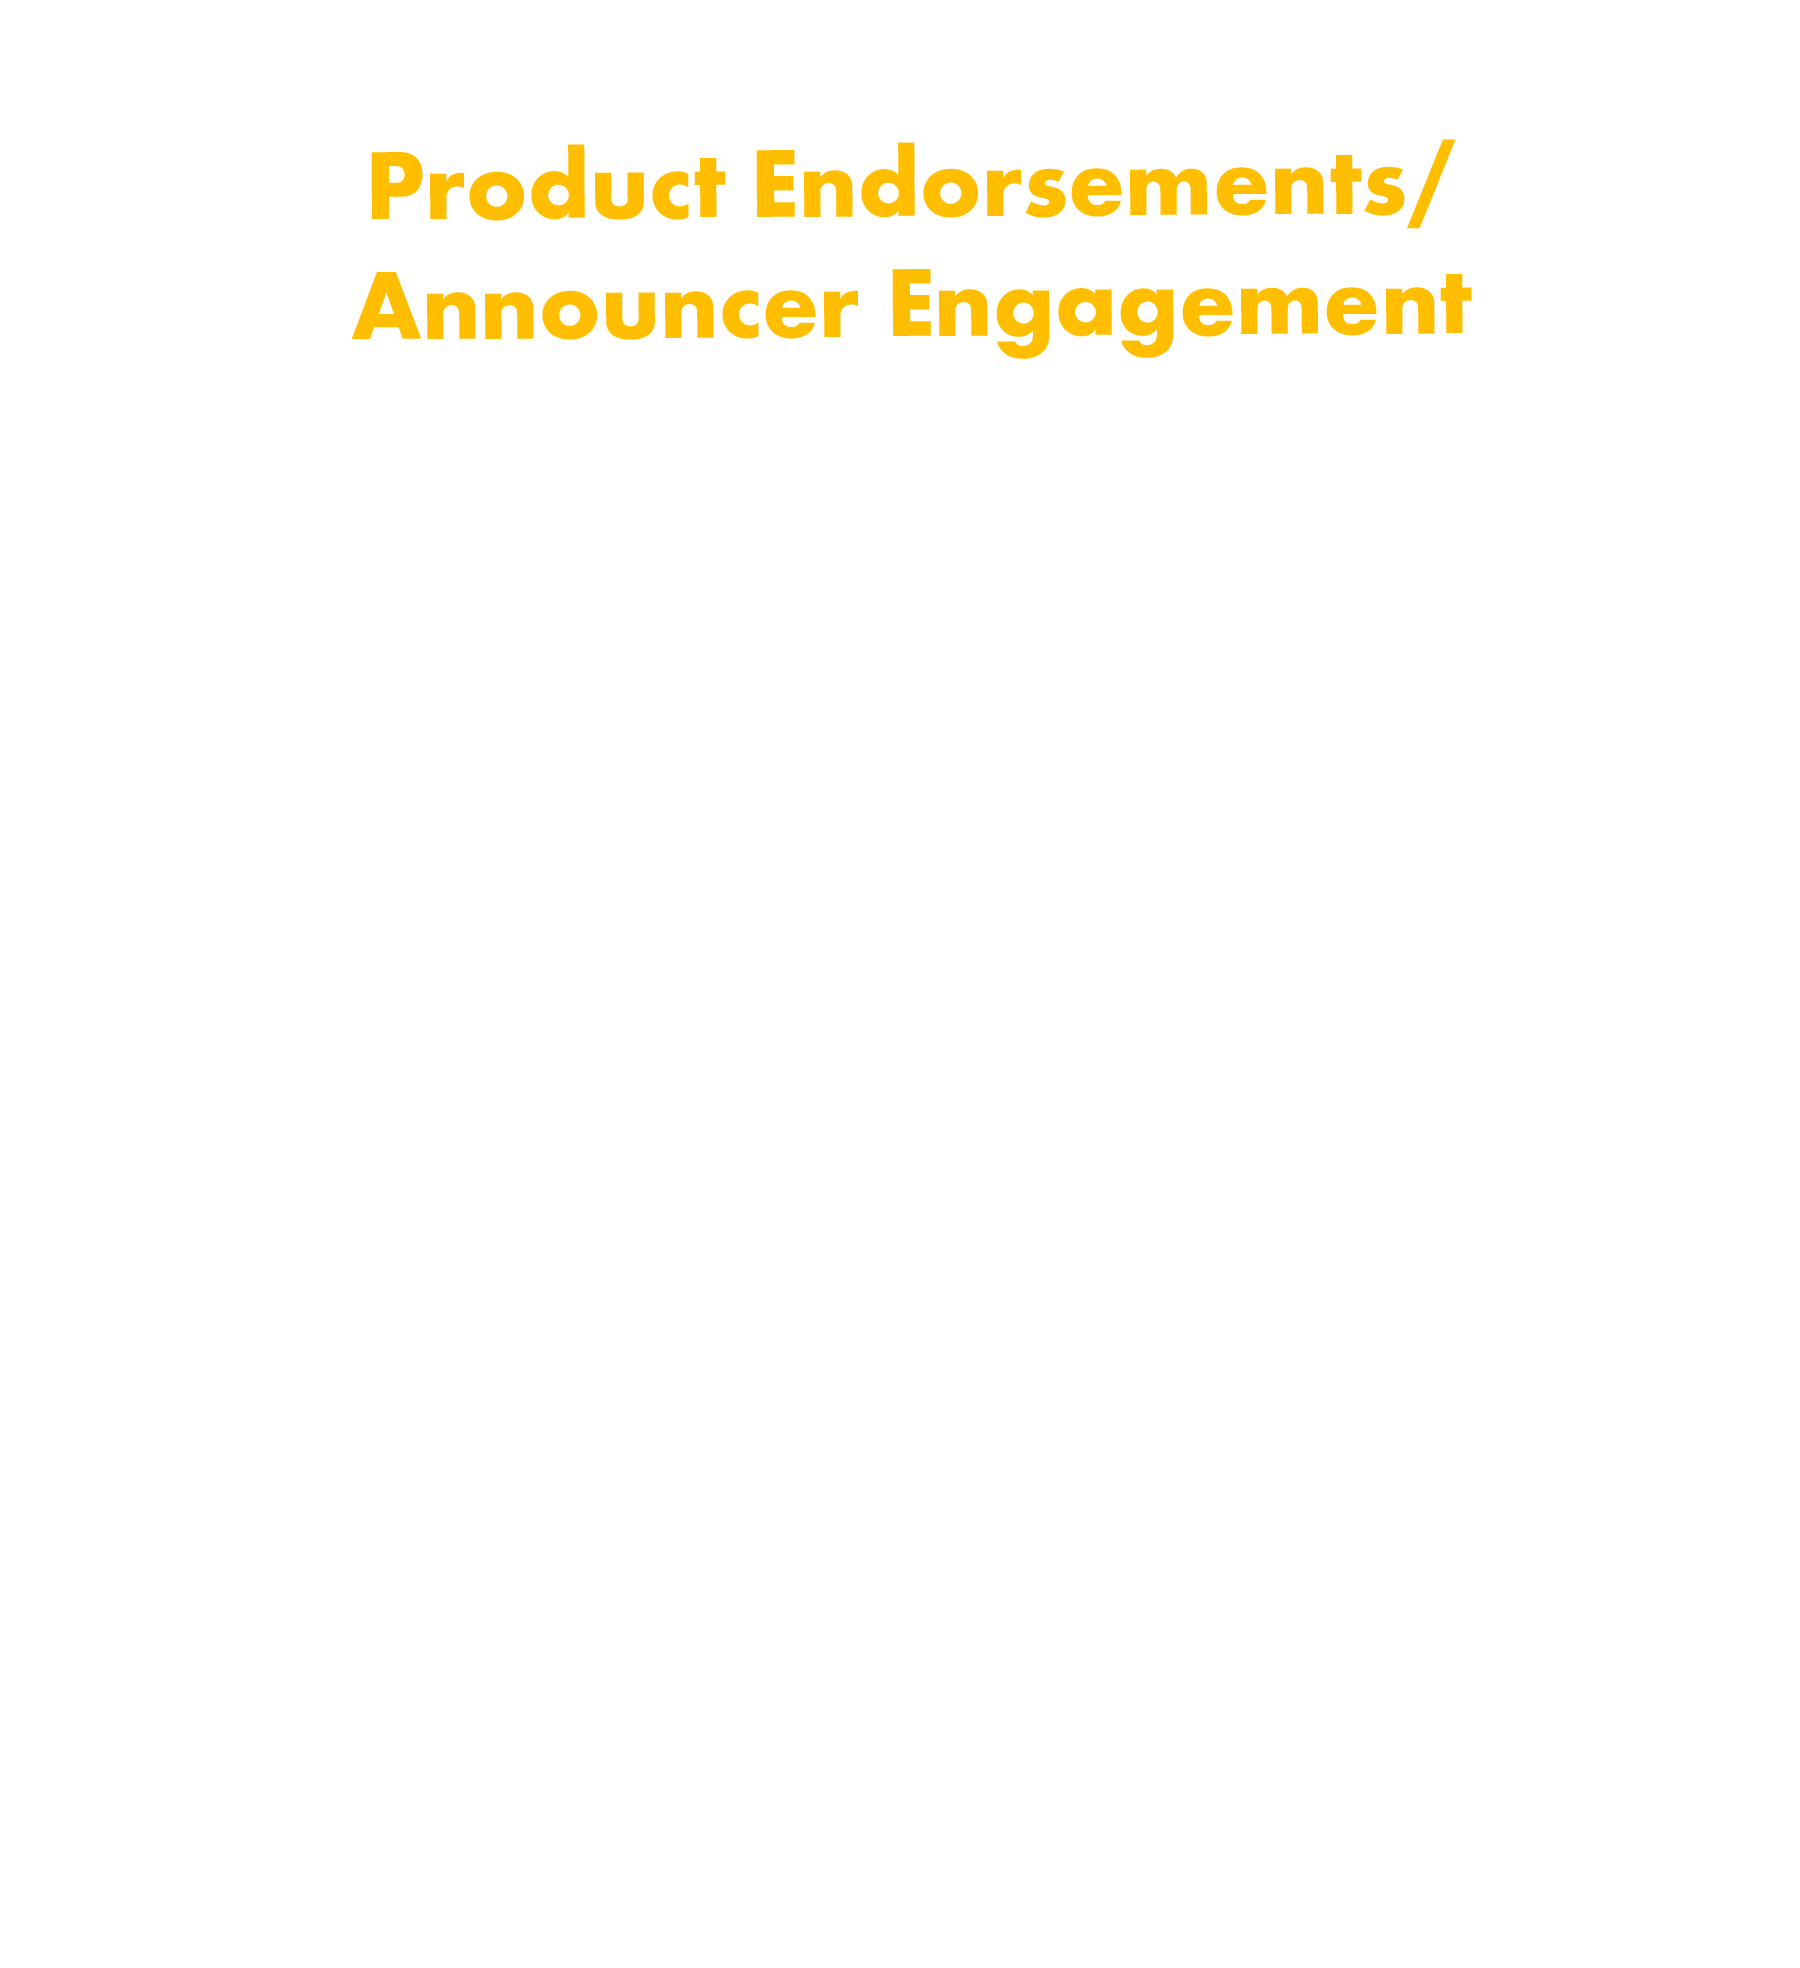 product_endorsements.png